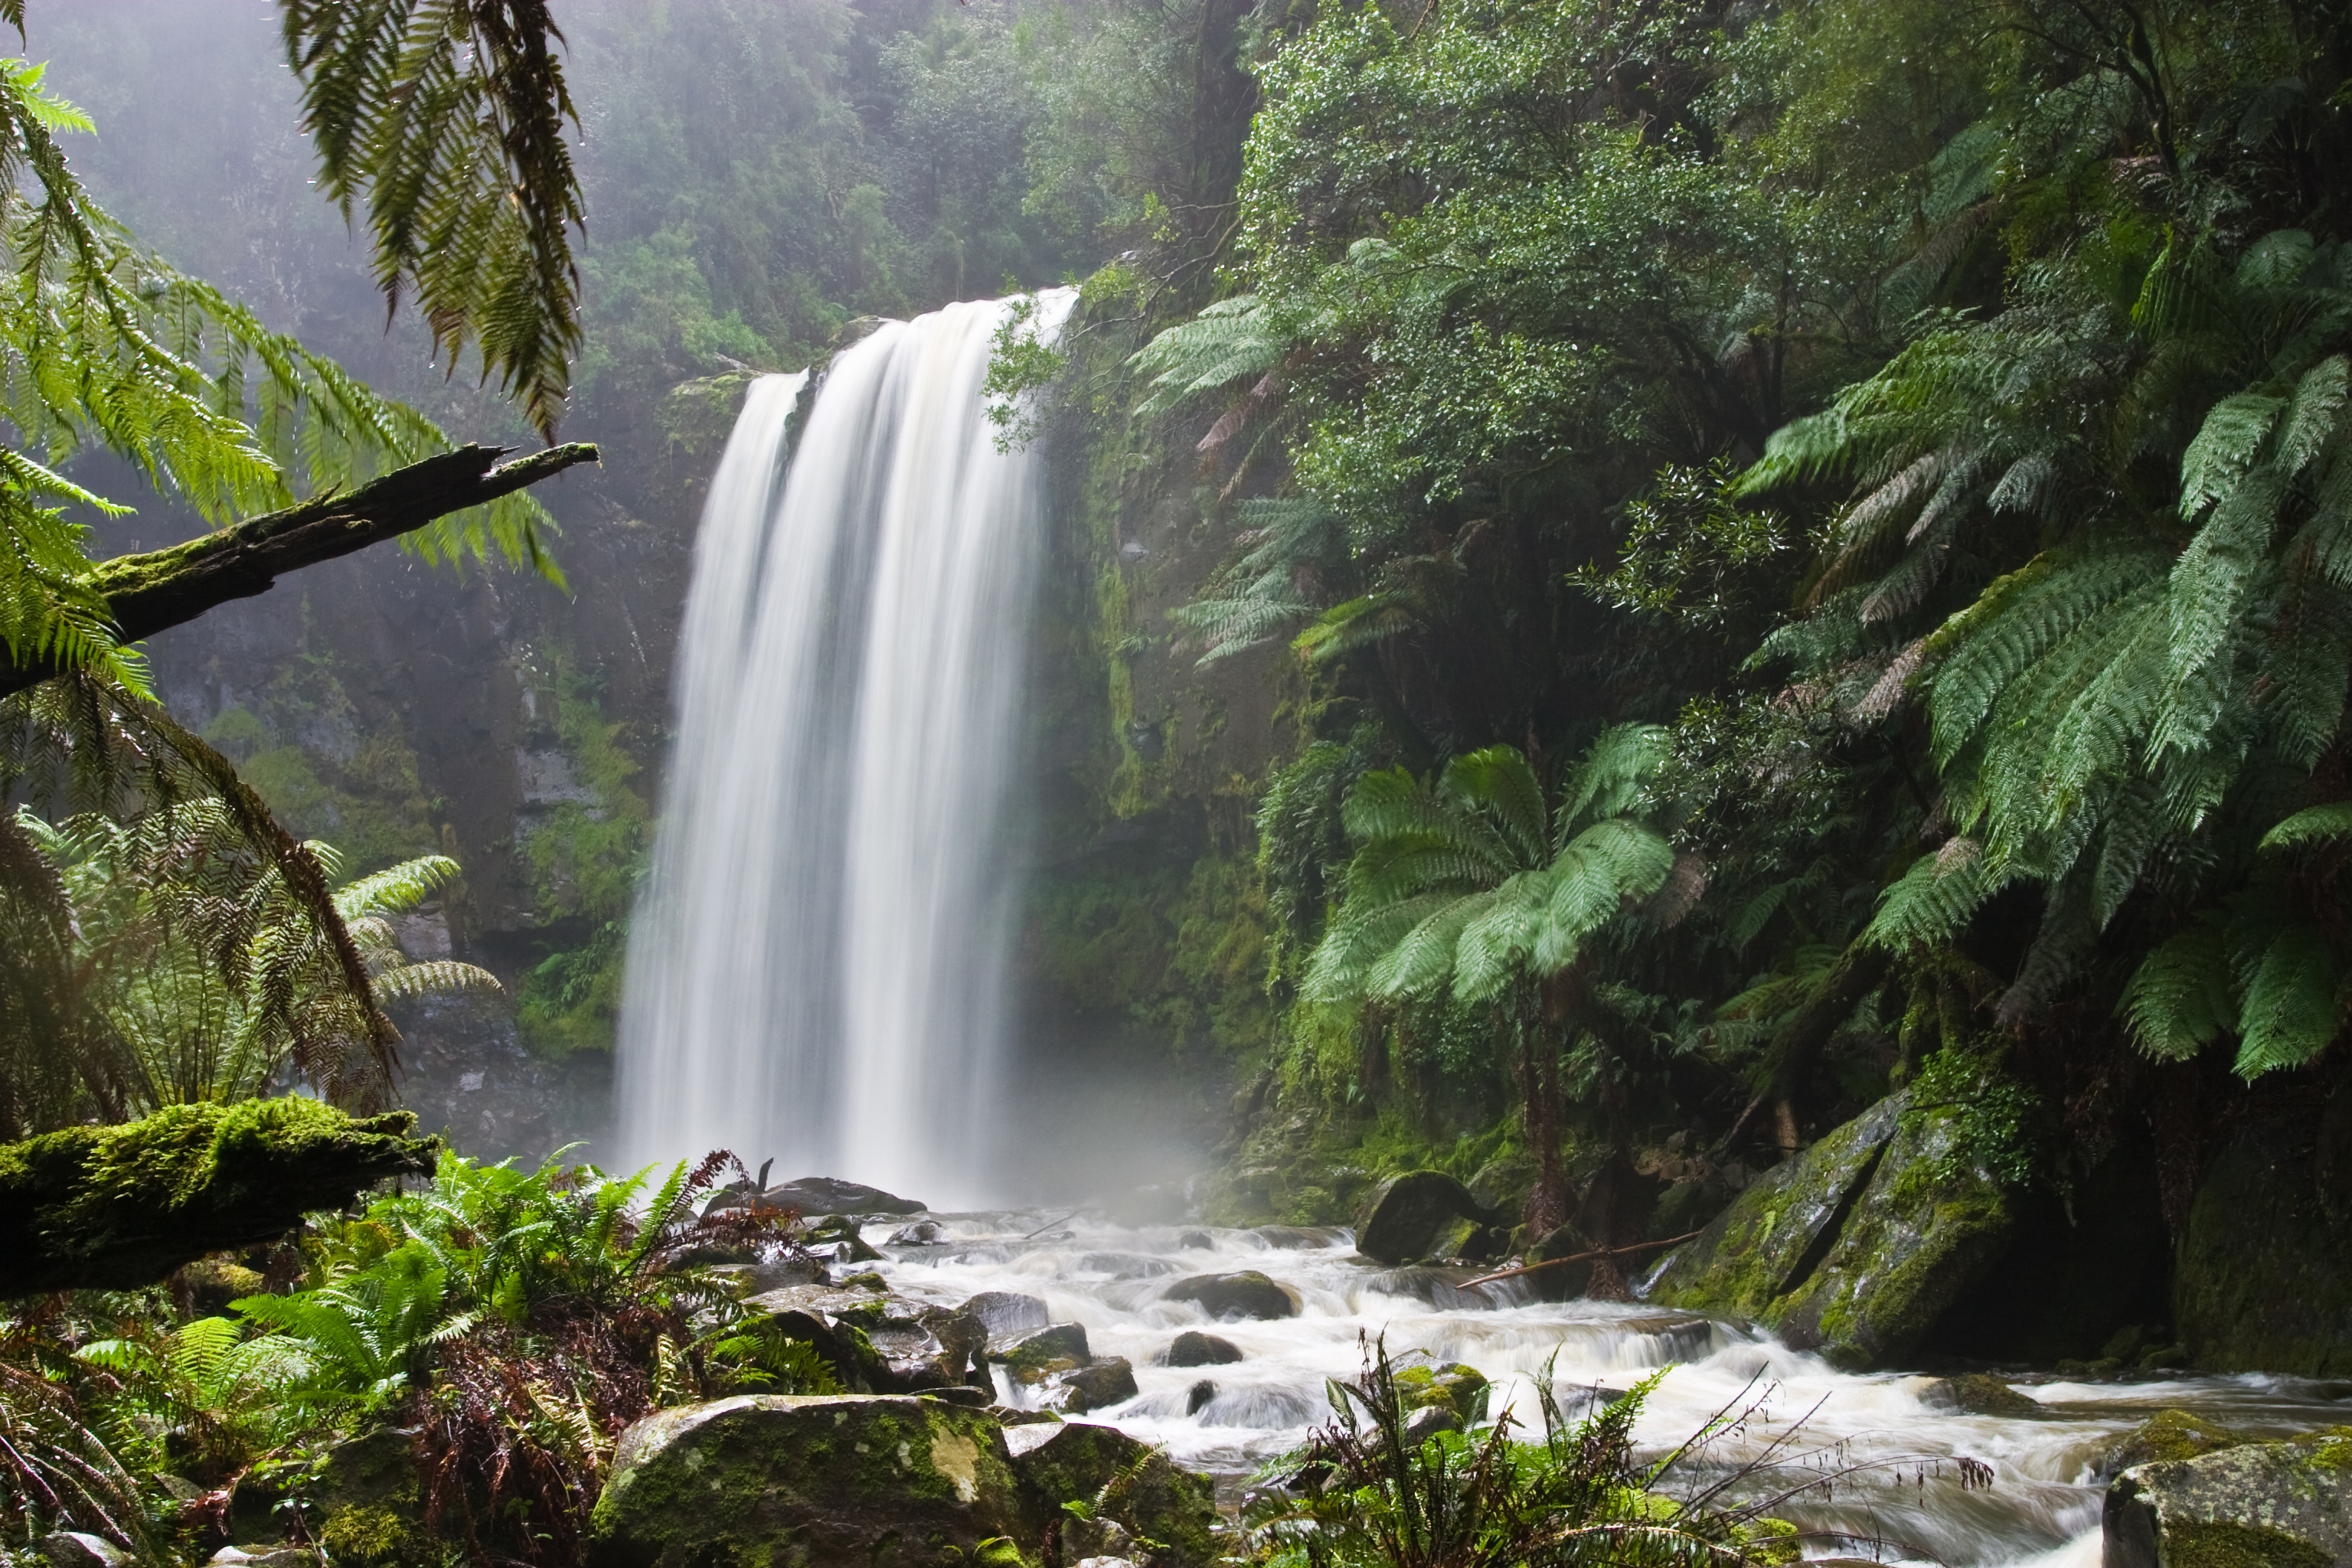 12 beautiful tall waterfalls in the world to see